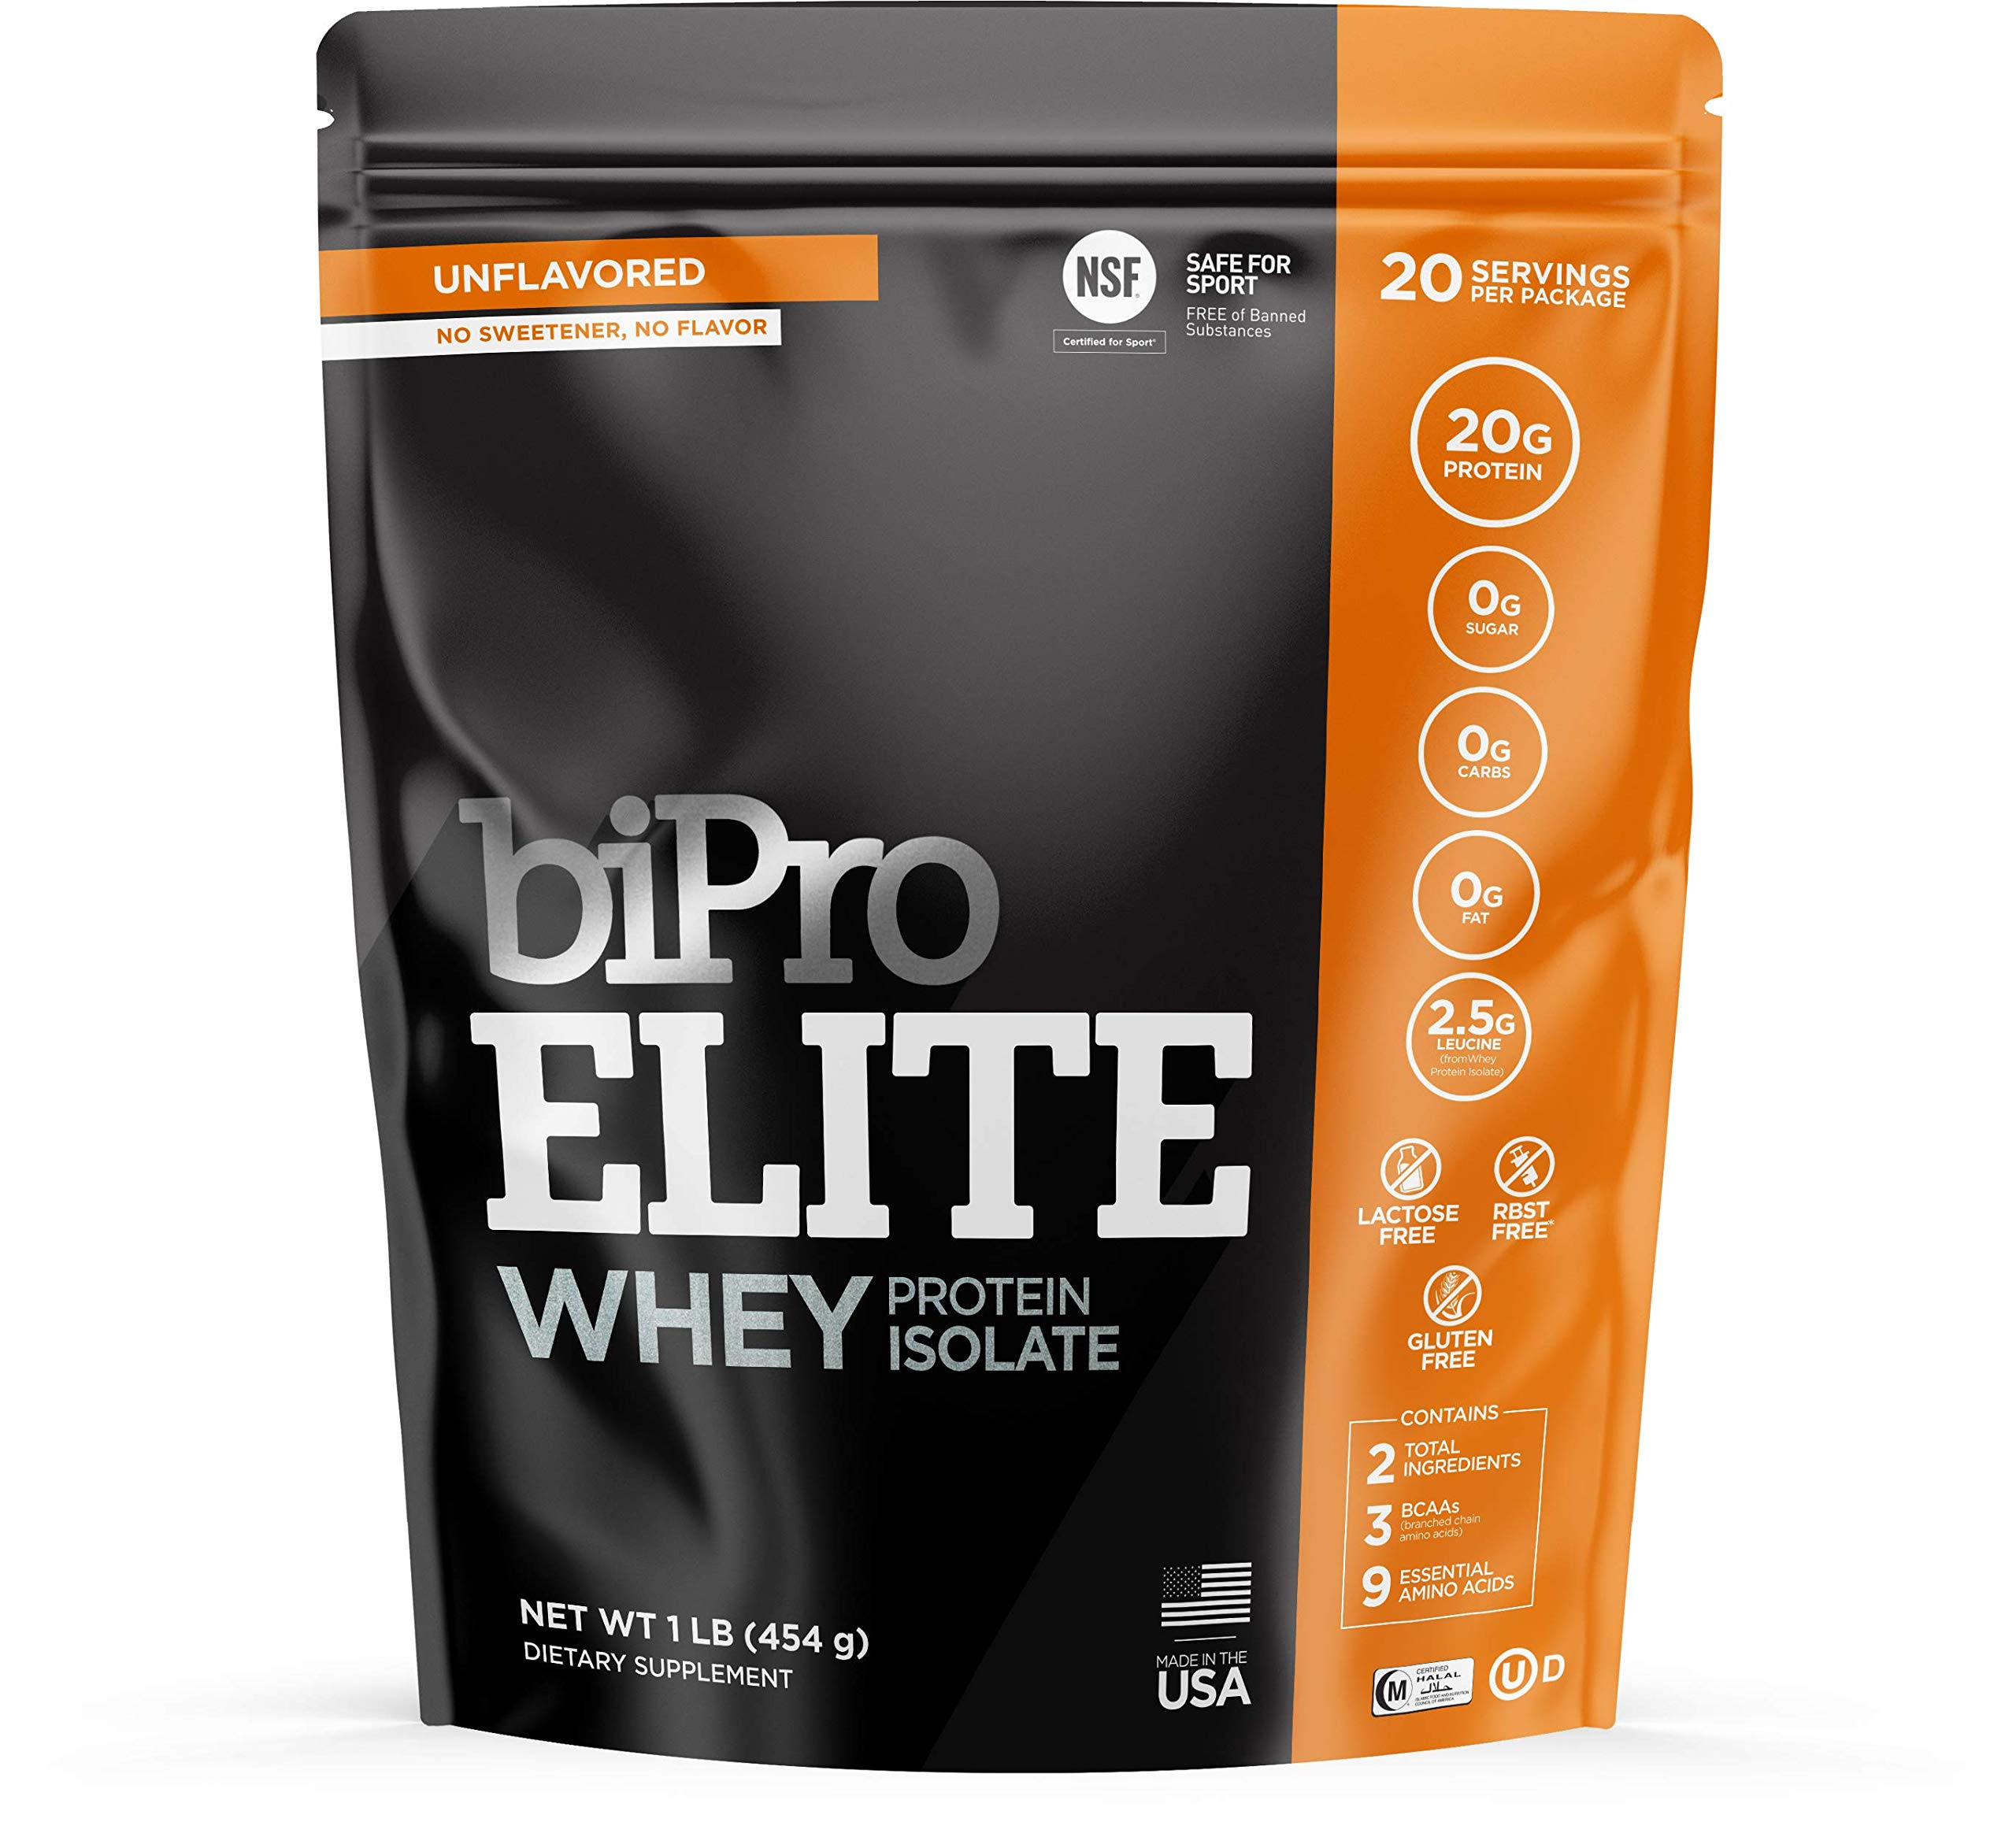 BiPro Elite 100% Whey Isolate Protein Powder, Unflavored, 1 Pound by BiPro